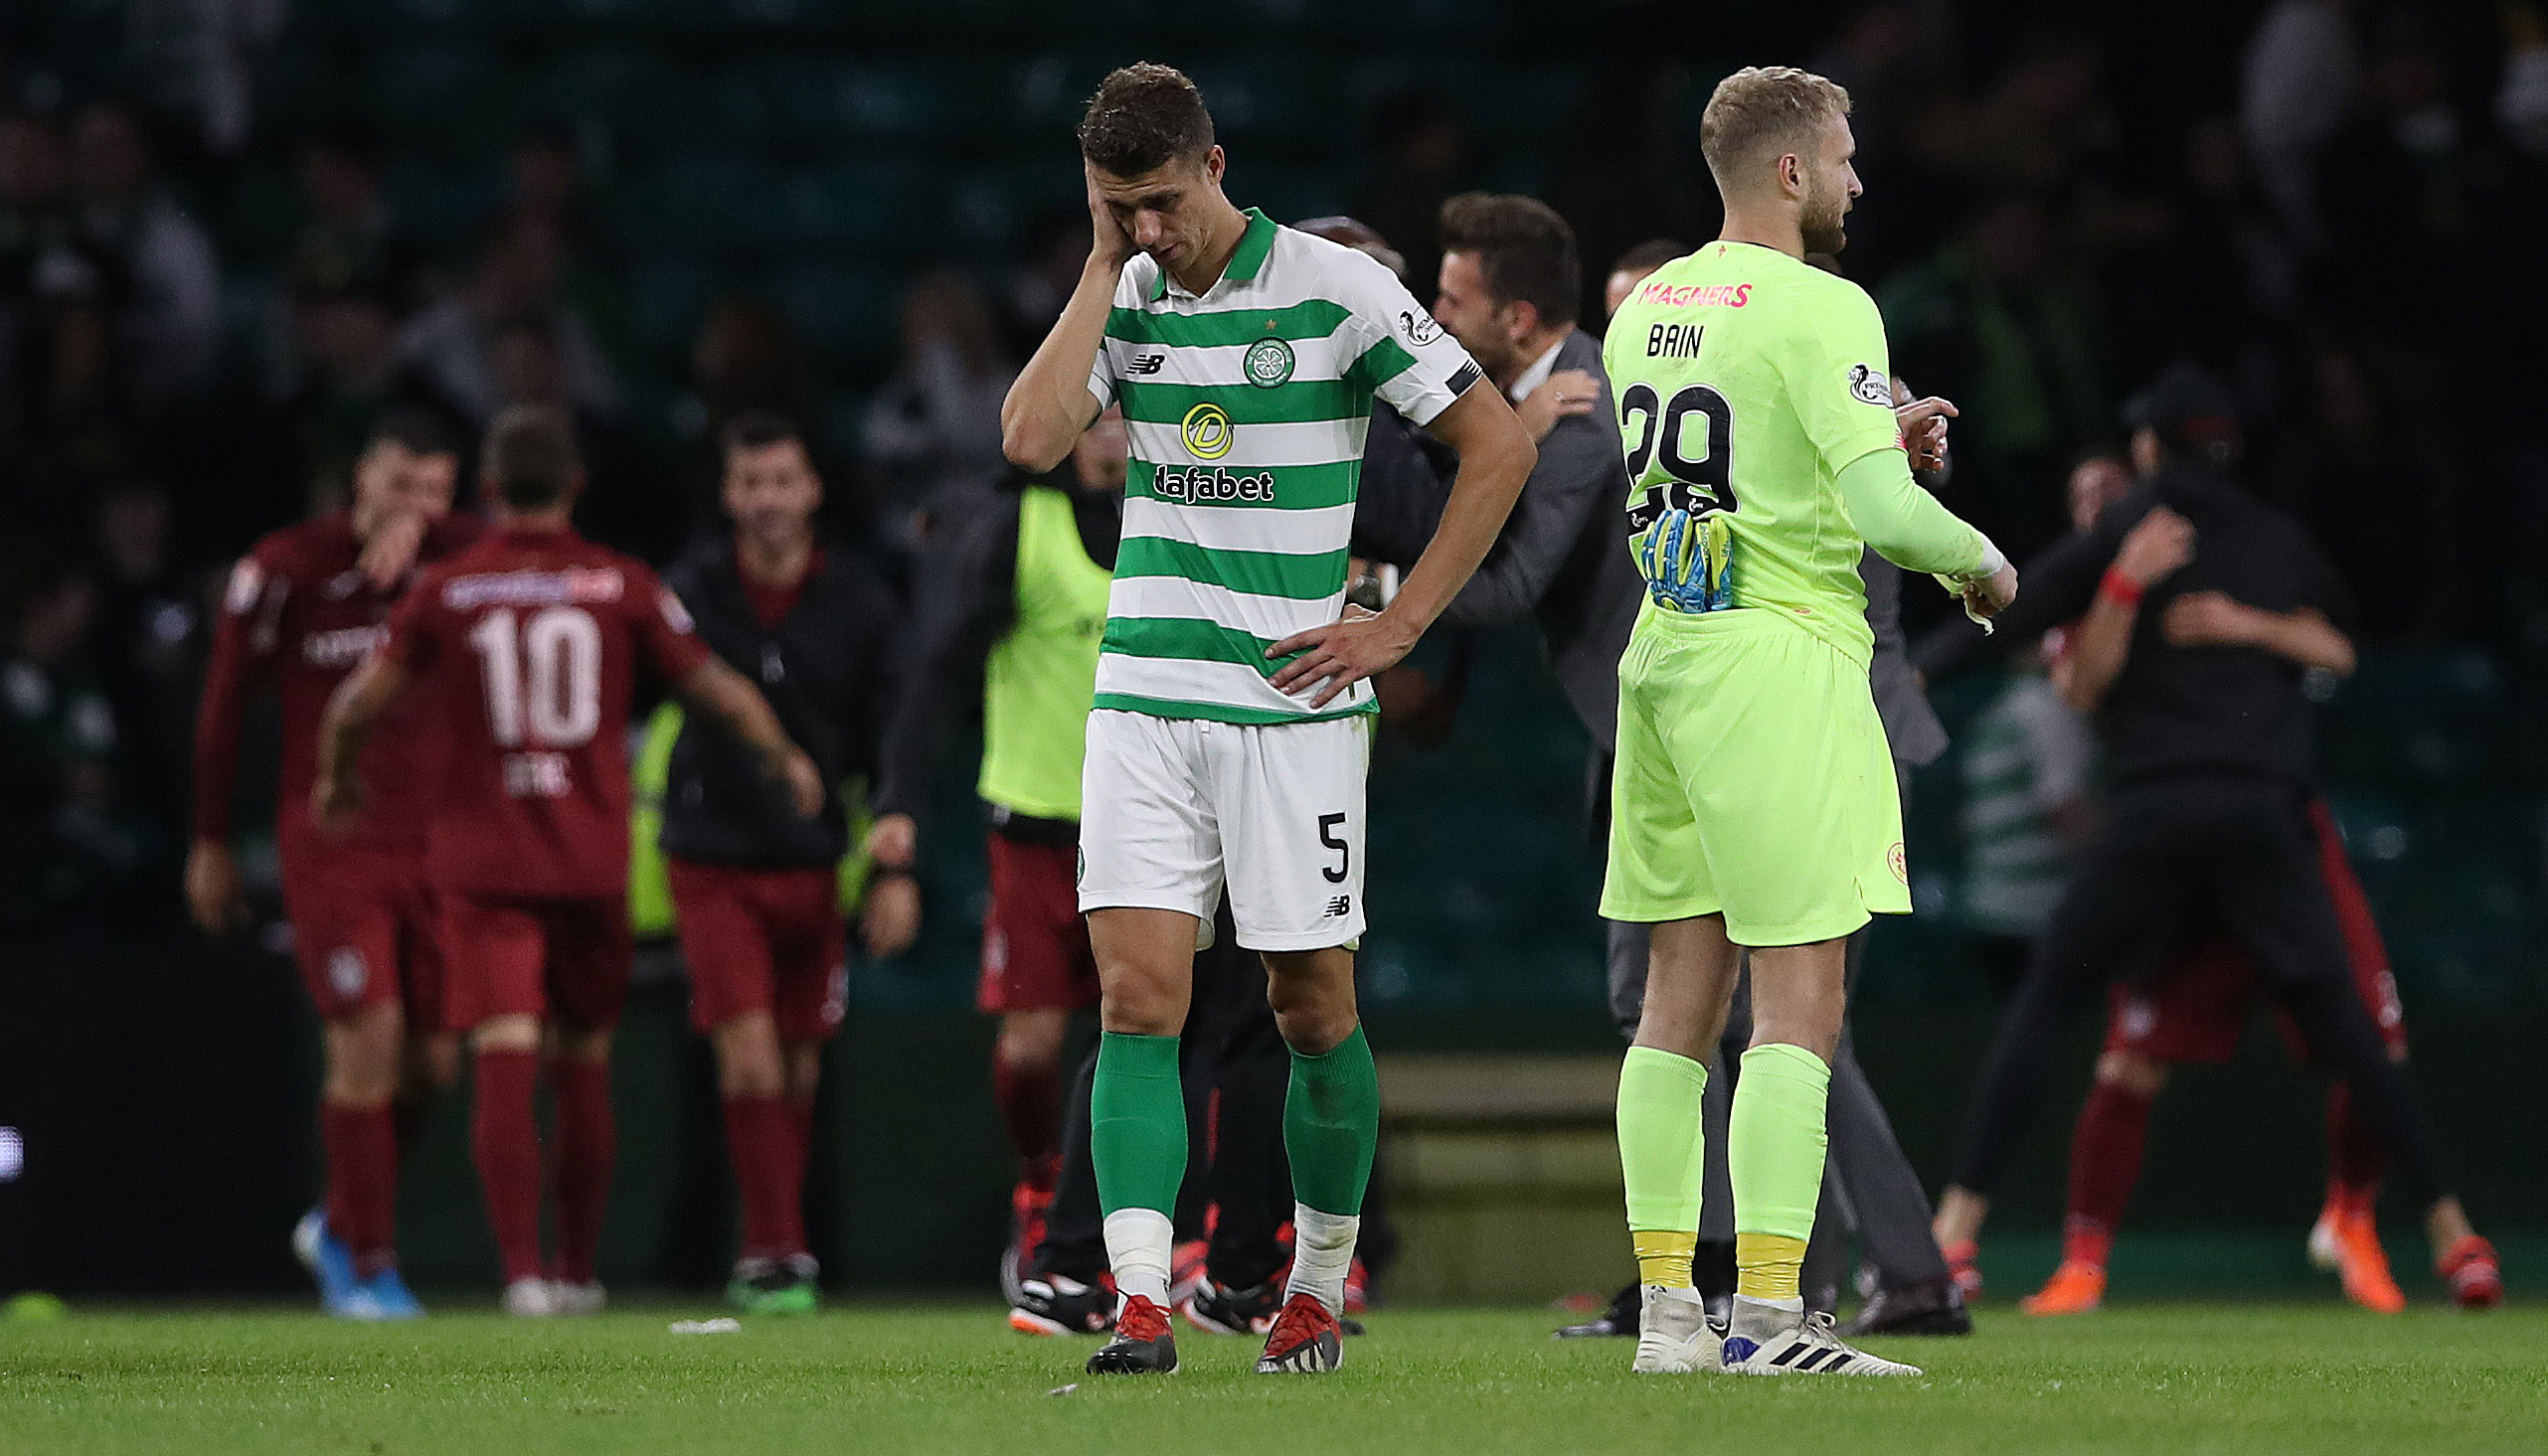 Celtic vs CFR Cluj: Hoops hope for revenge